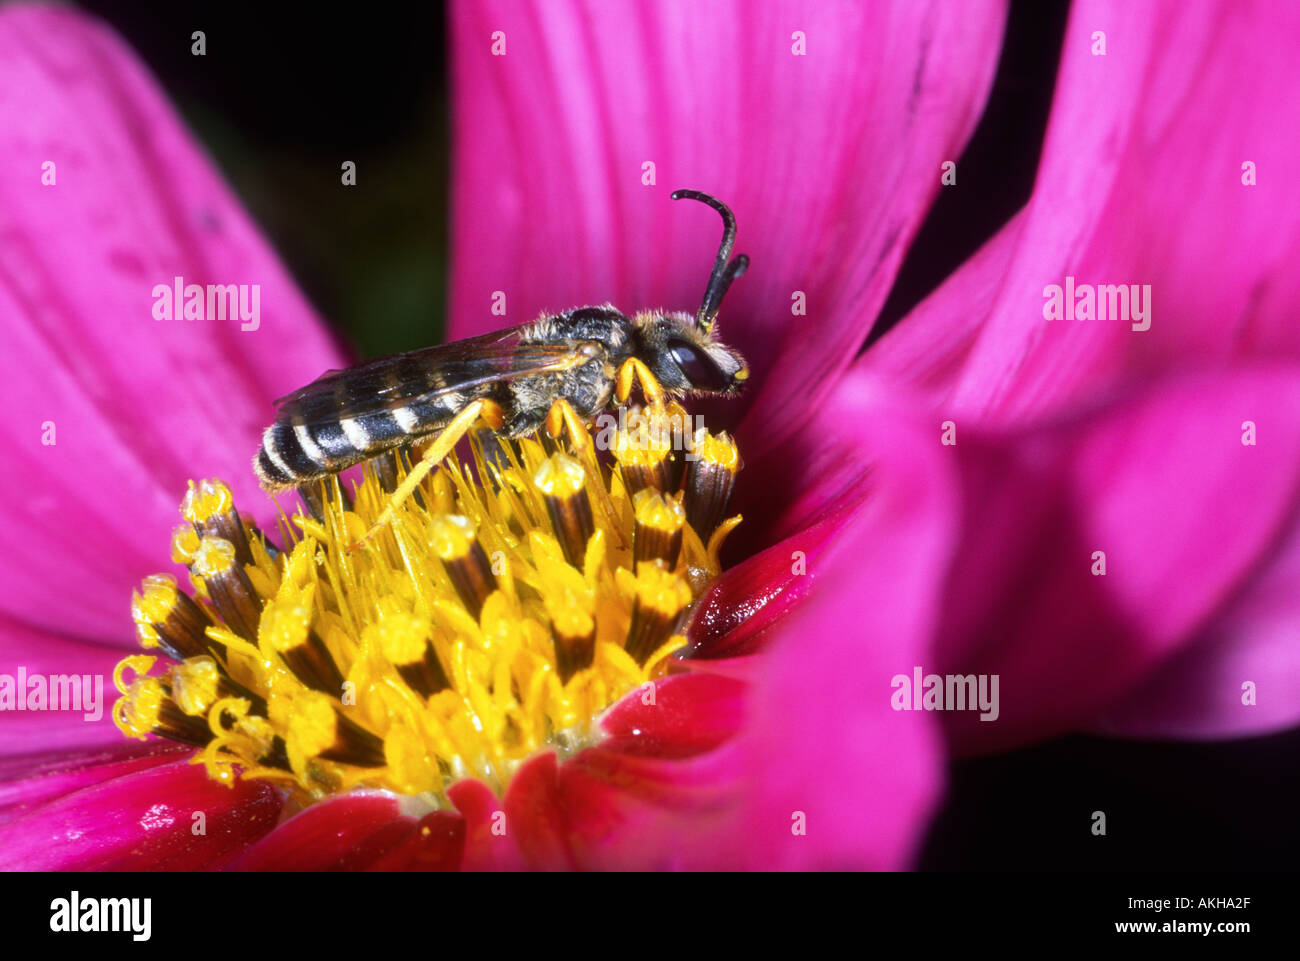 Bee, Halictus sp. Collecting nectar on flower - Stock Image